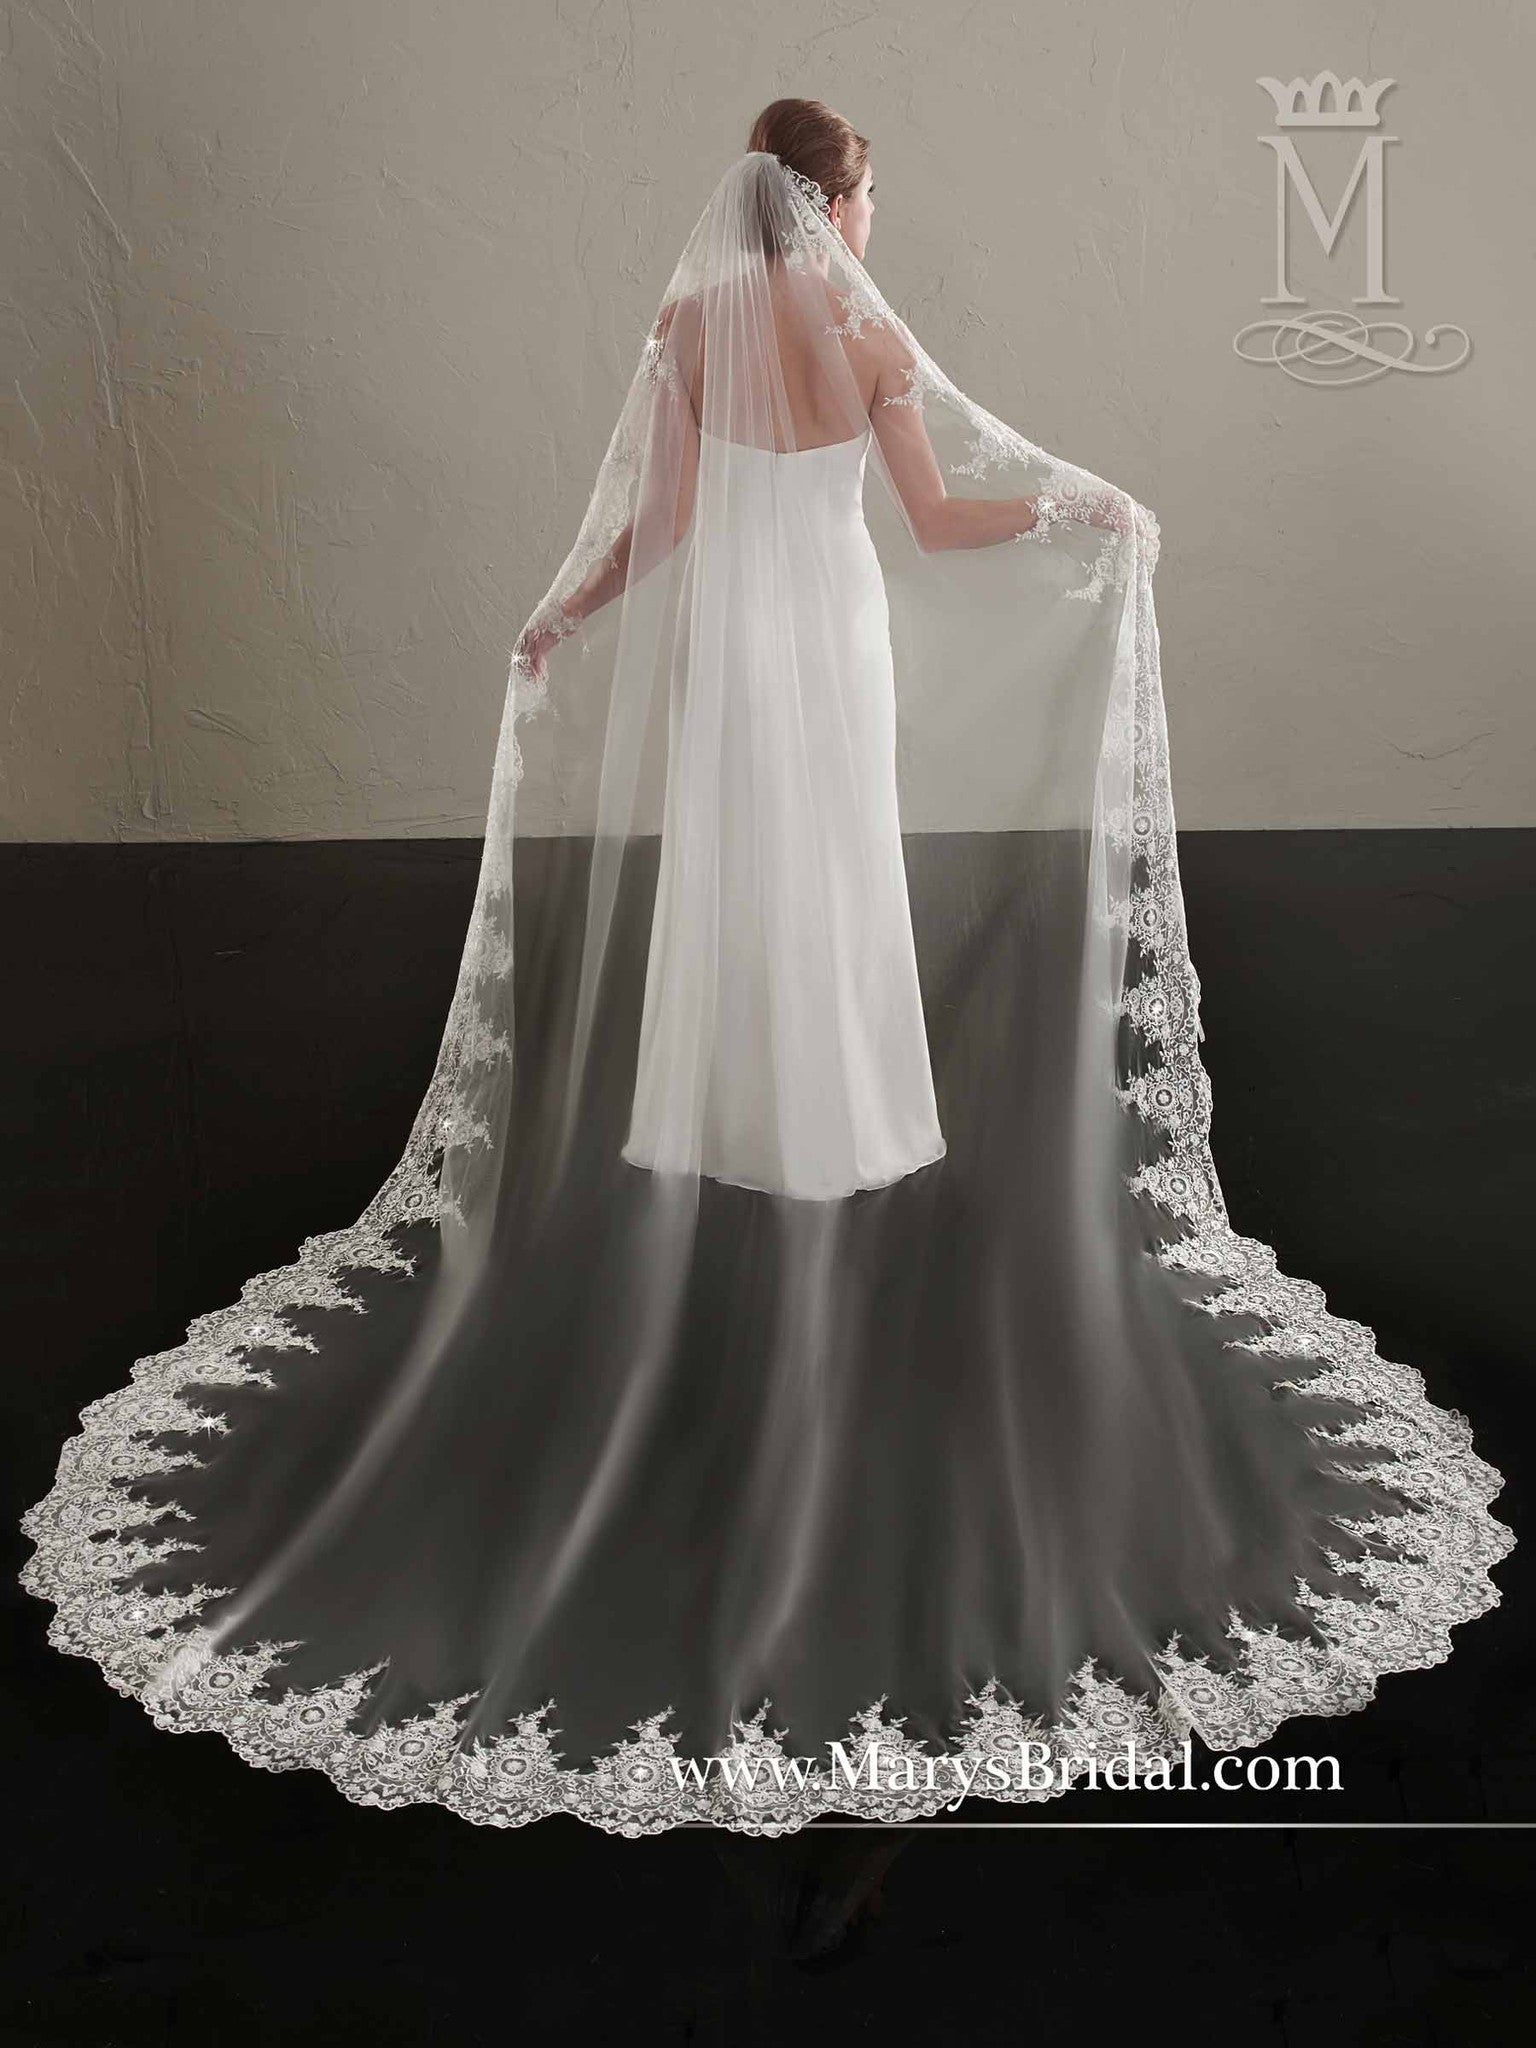 Romantic Lace Veil - Concepcion Bridal & Quinceañera Boutique